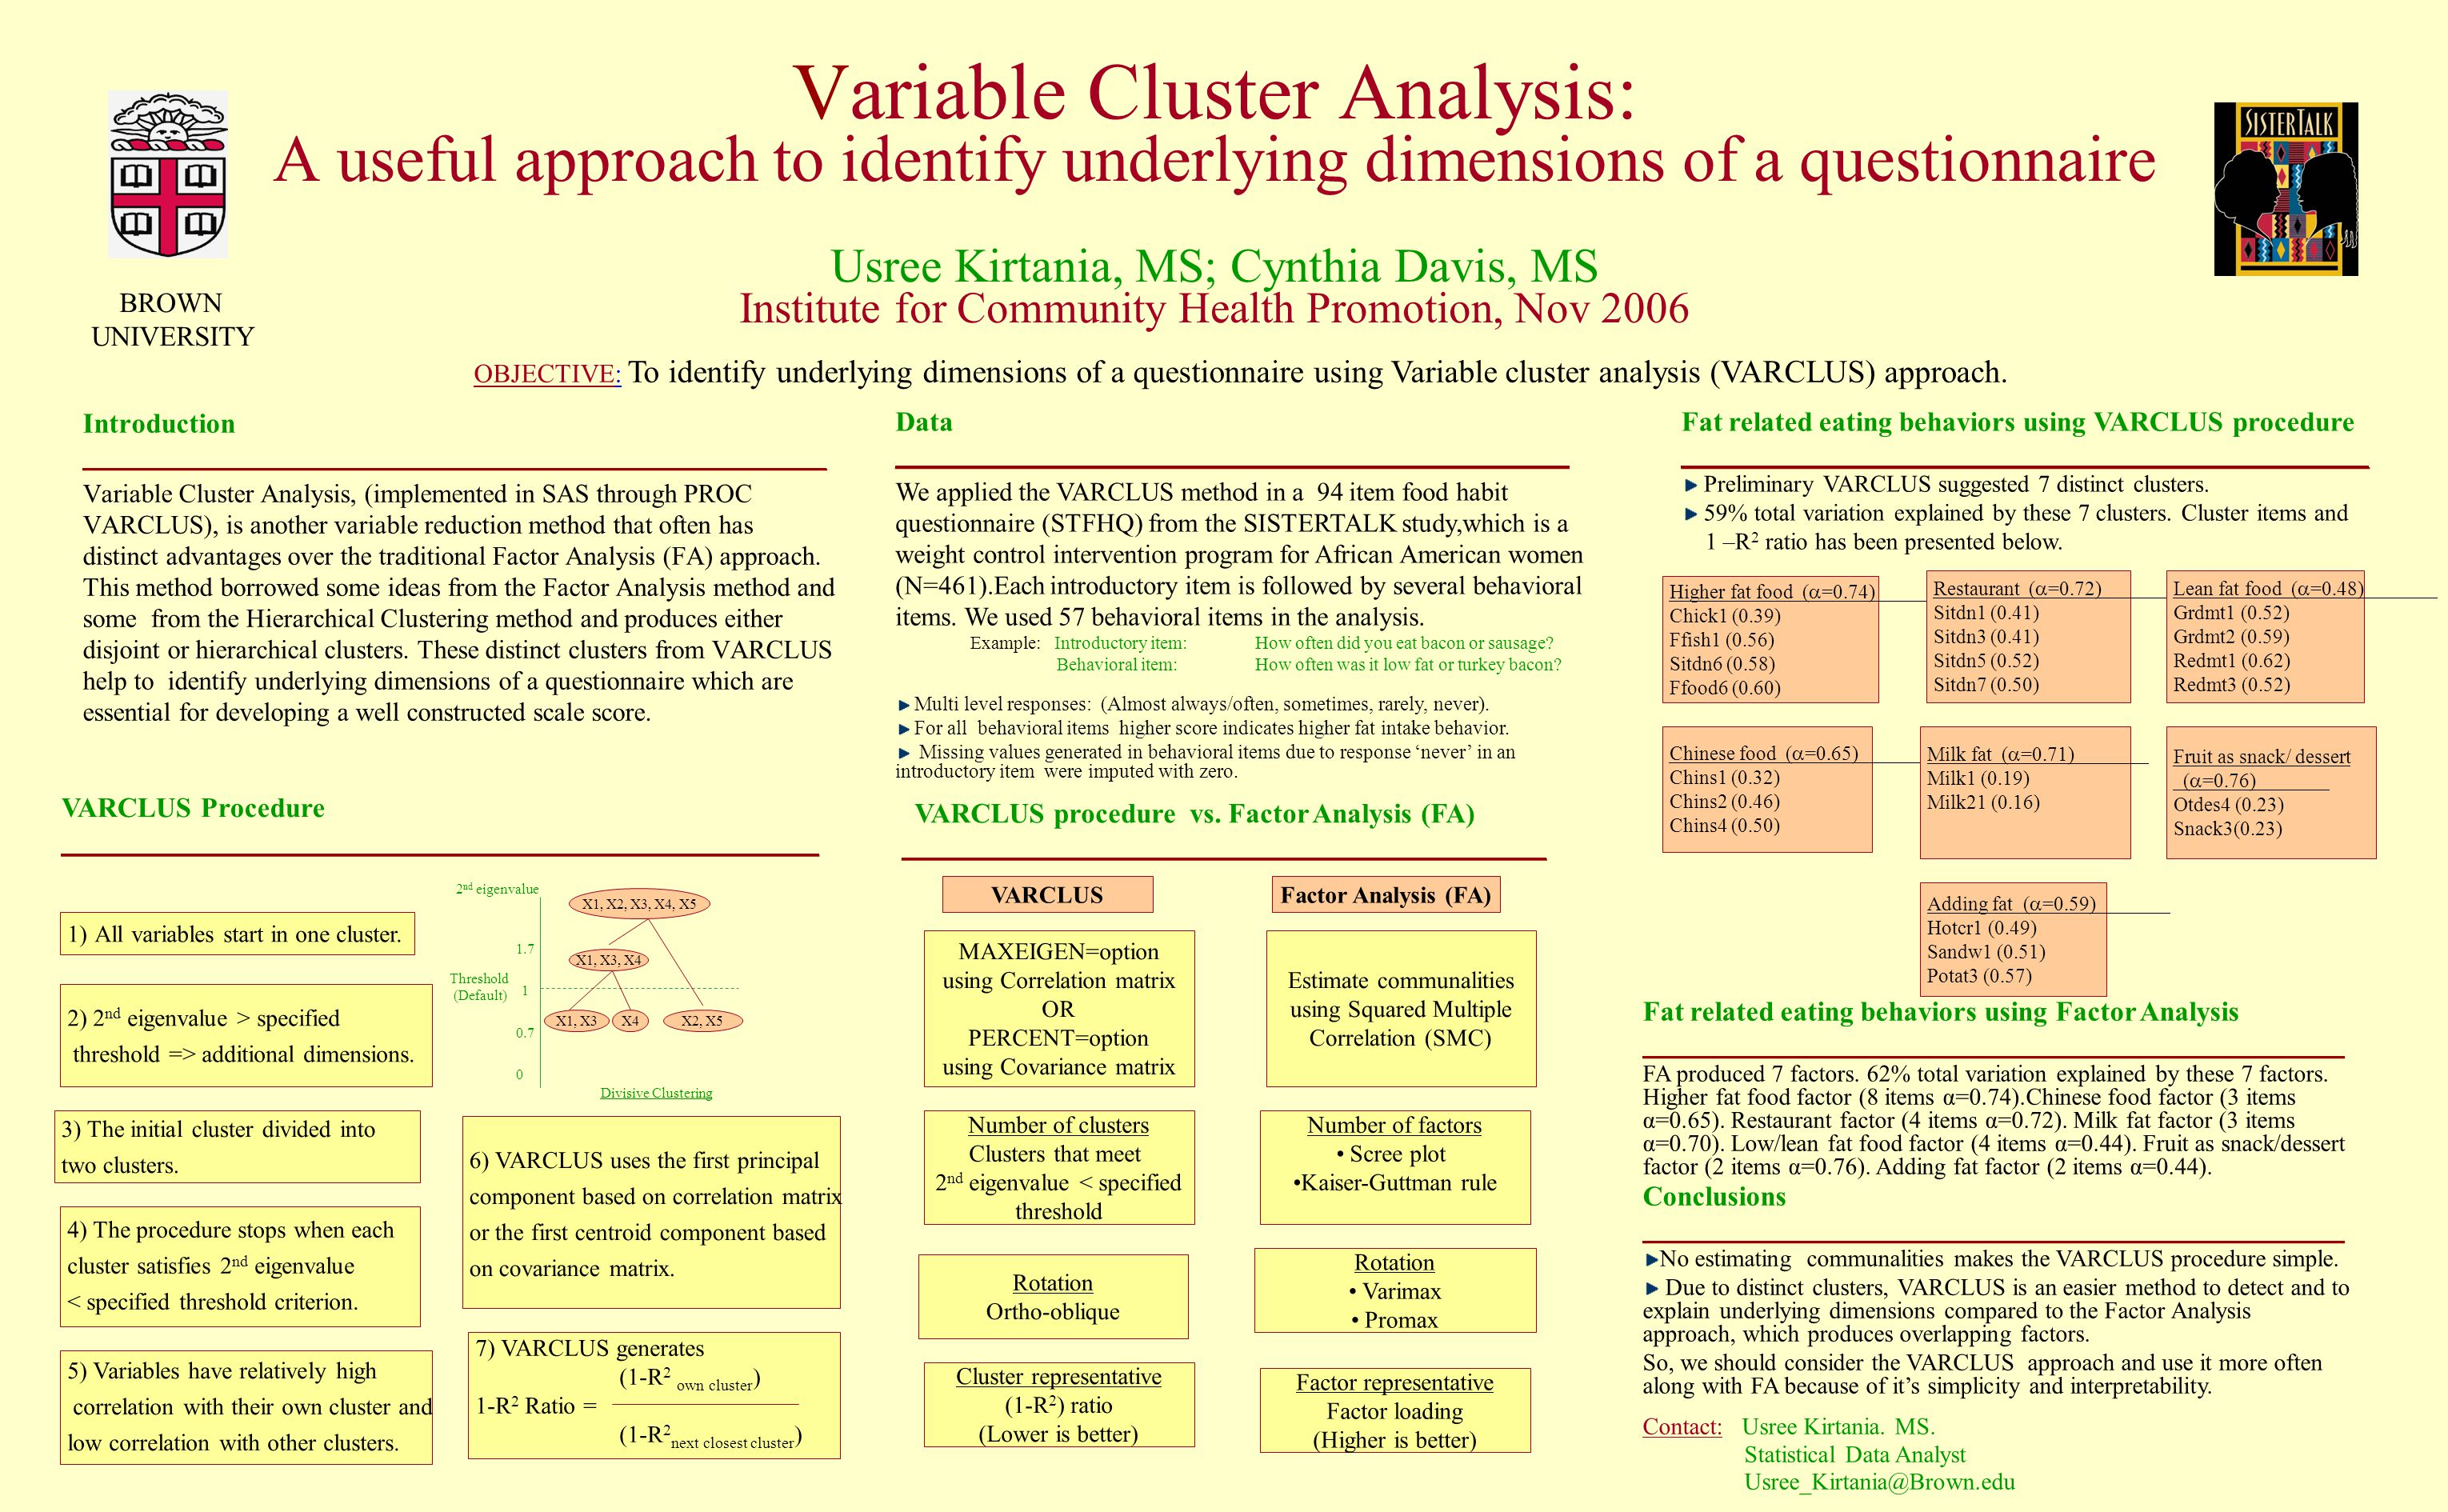 Variable Cluster Analysis: A useful approach to identify underlying dimensions of a questionnaire Usree Kirtania, MS; Cynthia Davis, MS Institute for Community Health Promotion, Nov 2006